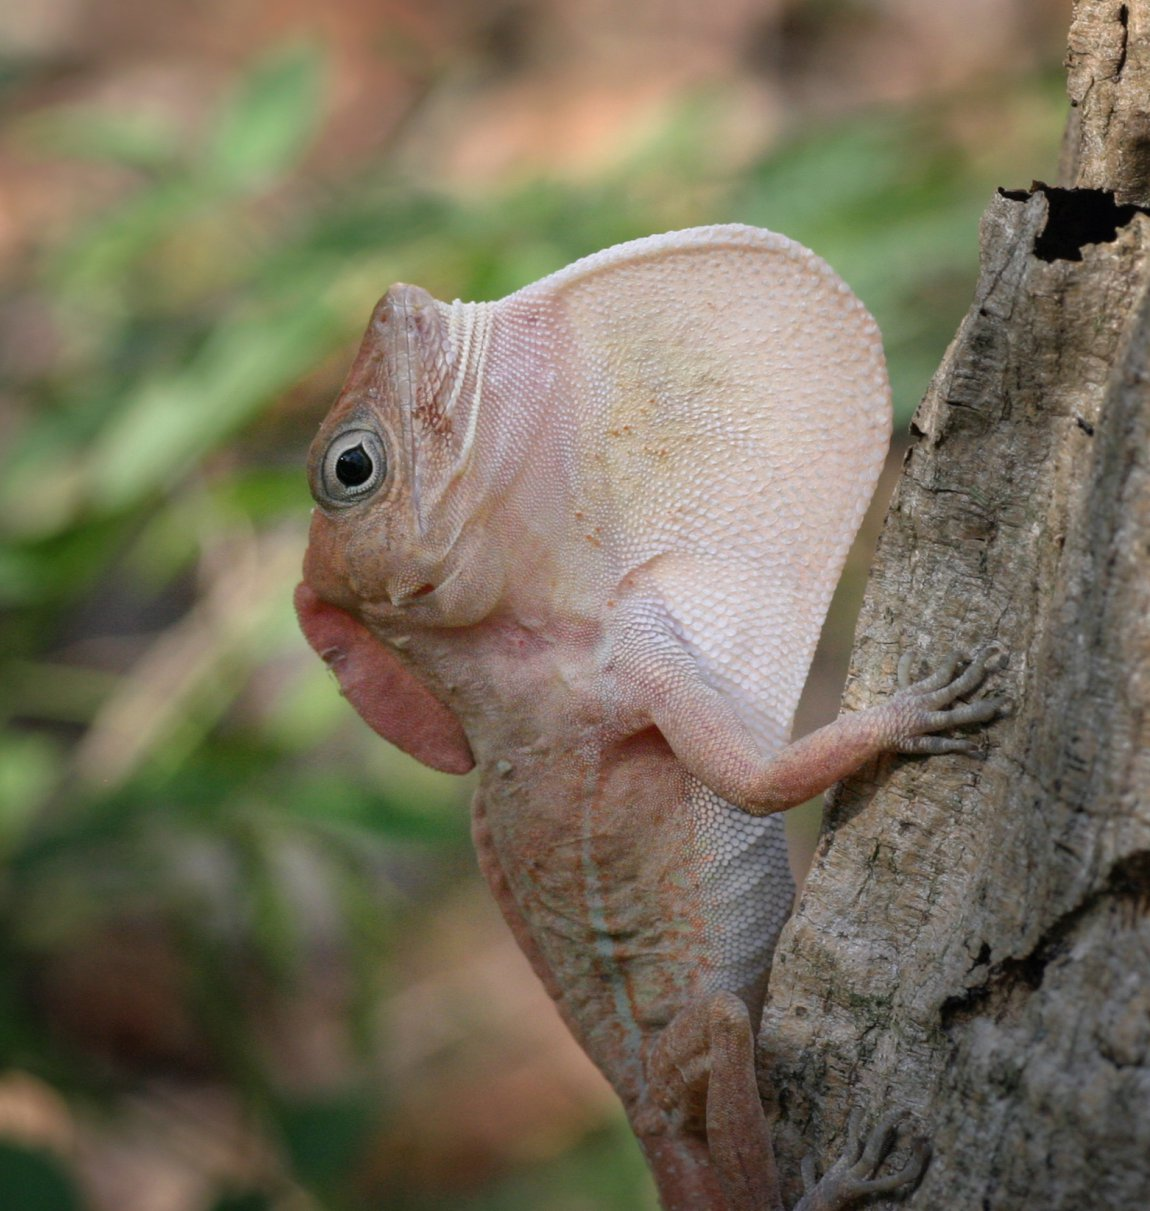 A big-headed anole (Anolis cybotes) extending its dewlap